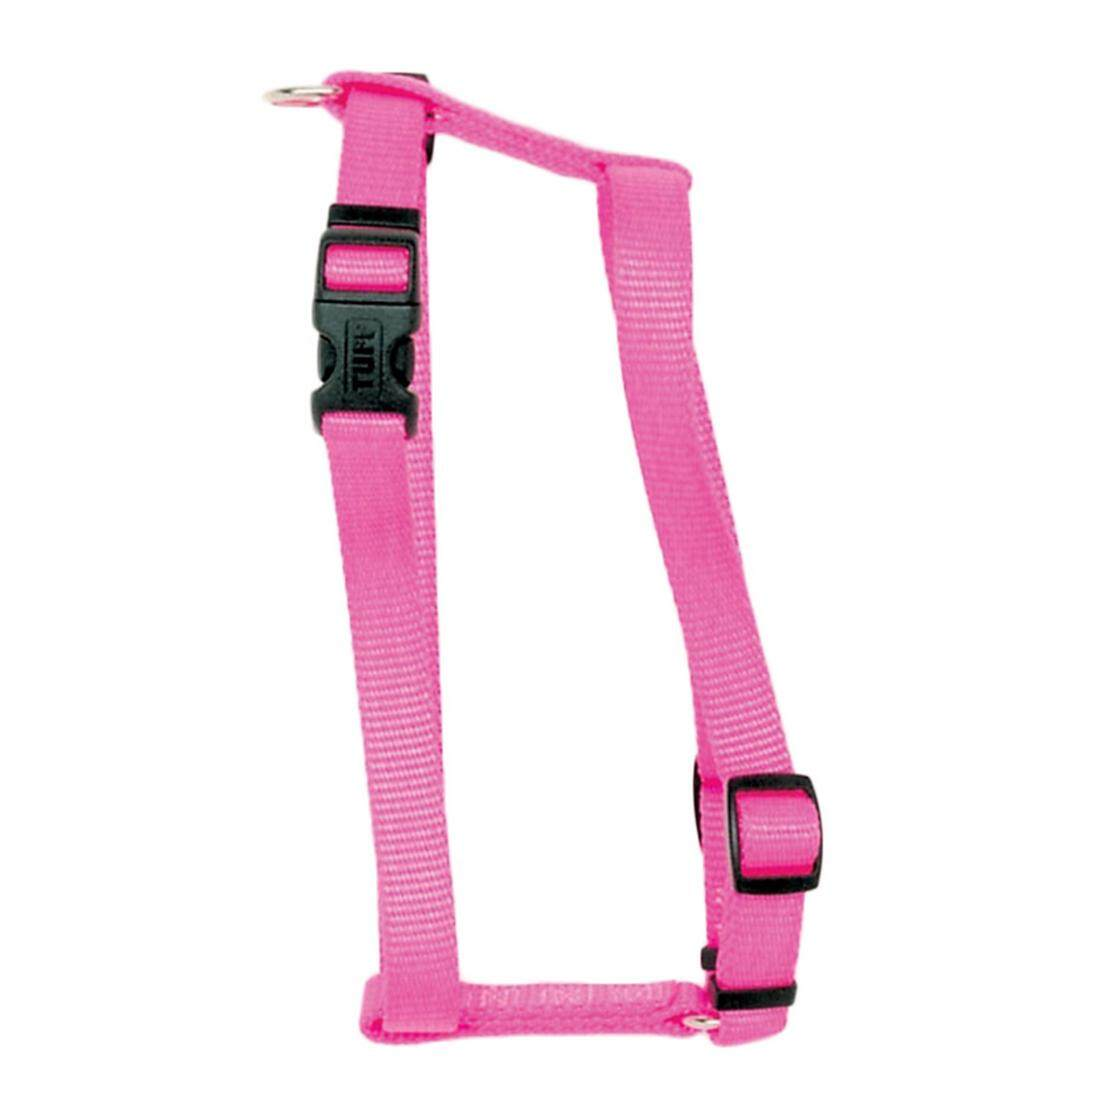 "[Coastal] Harness Adjustable Nylon 3/8"" - Extra Small - Neon Pink"